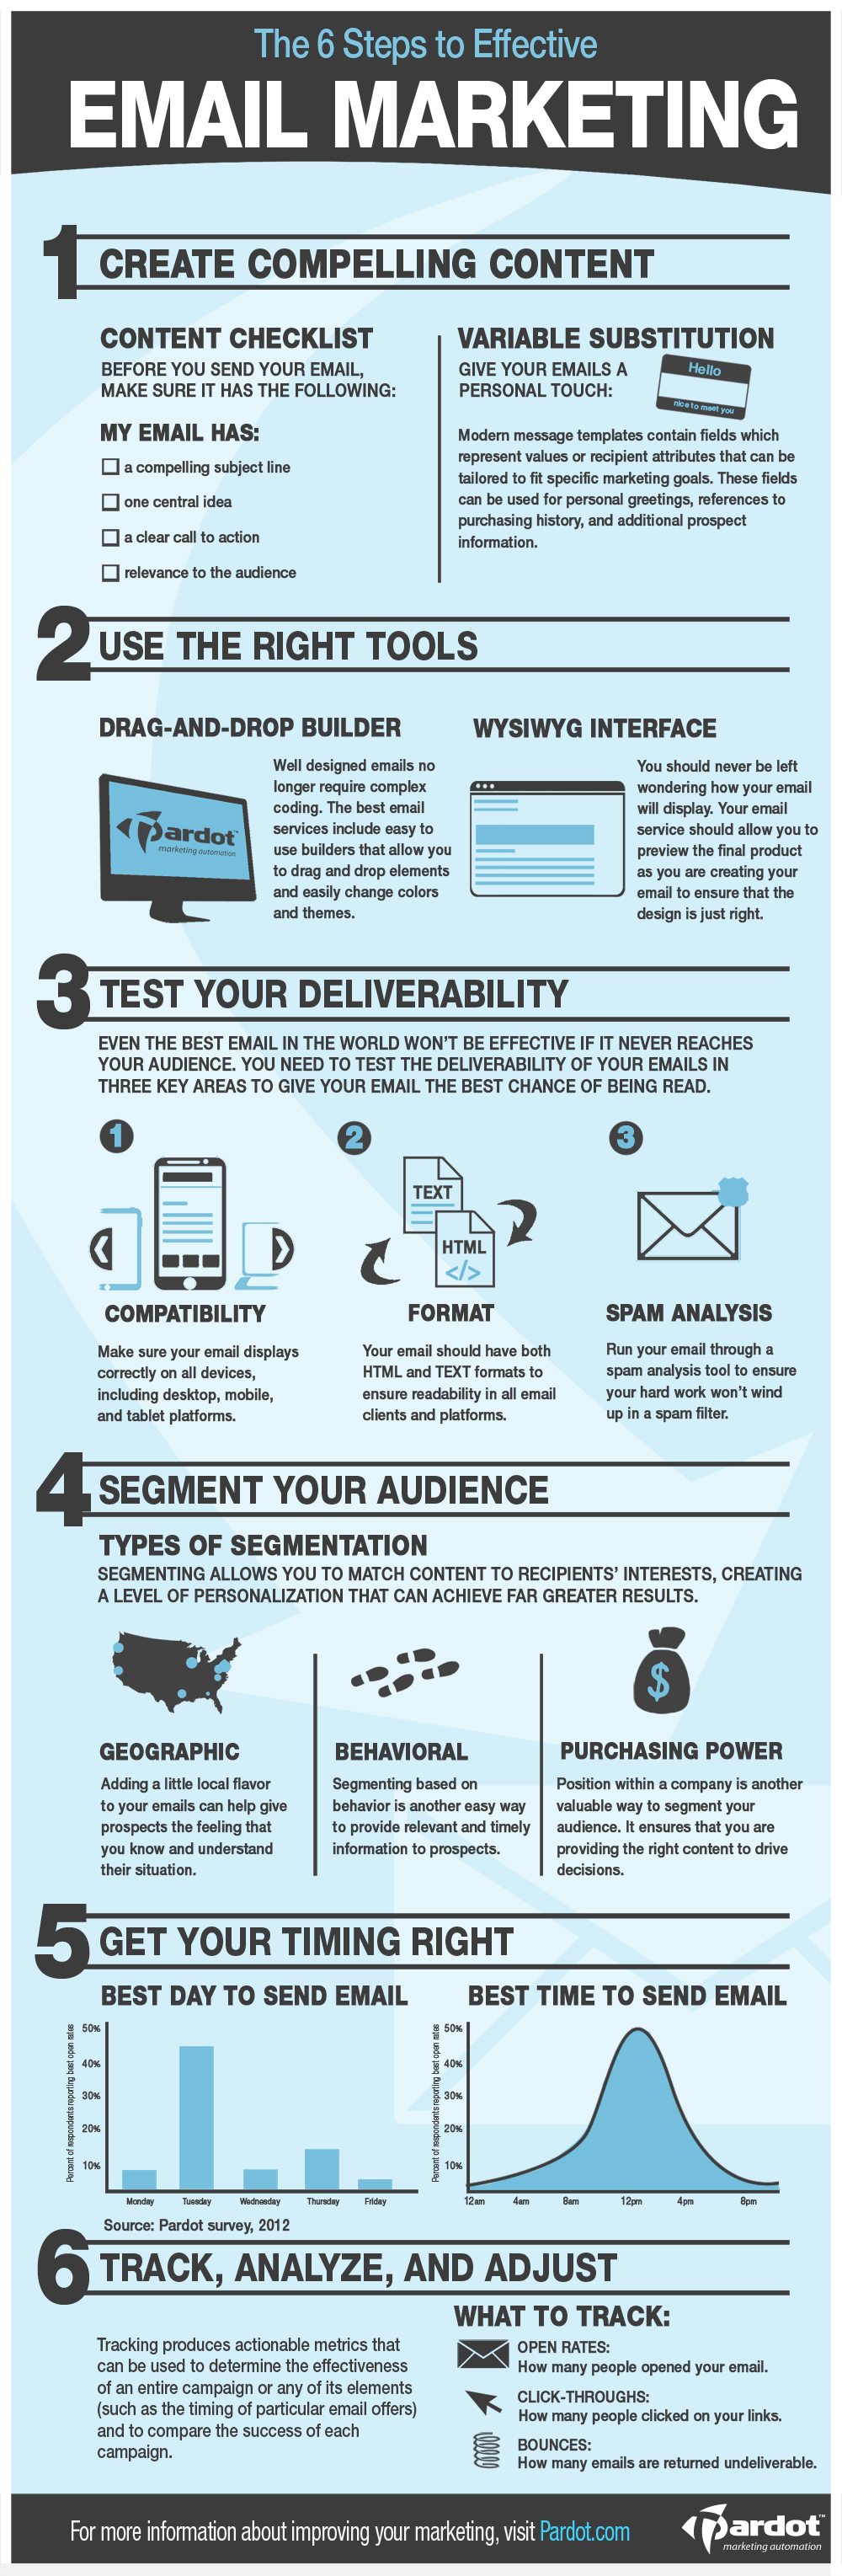 Creating Email Campaigns That Convert [Infographic] image 6 Steps to Effective Email13